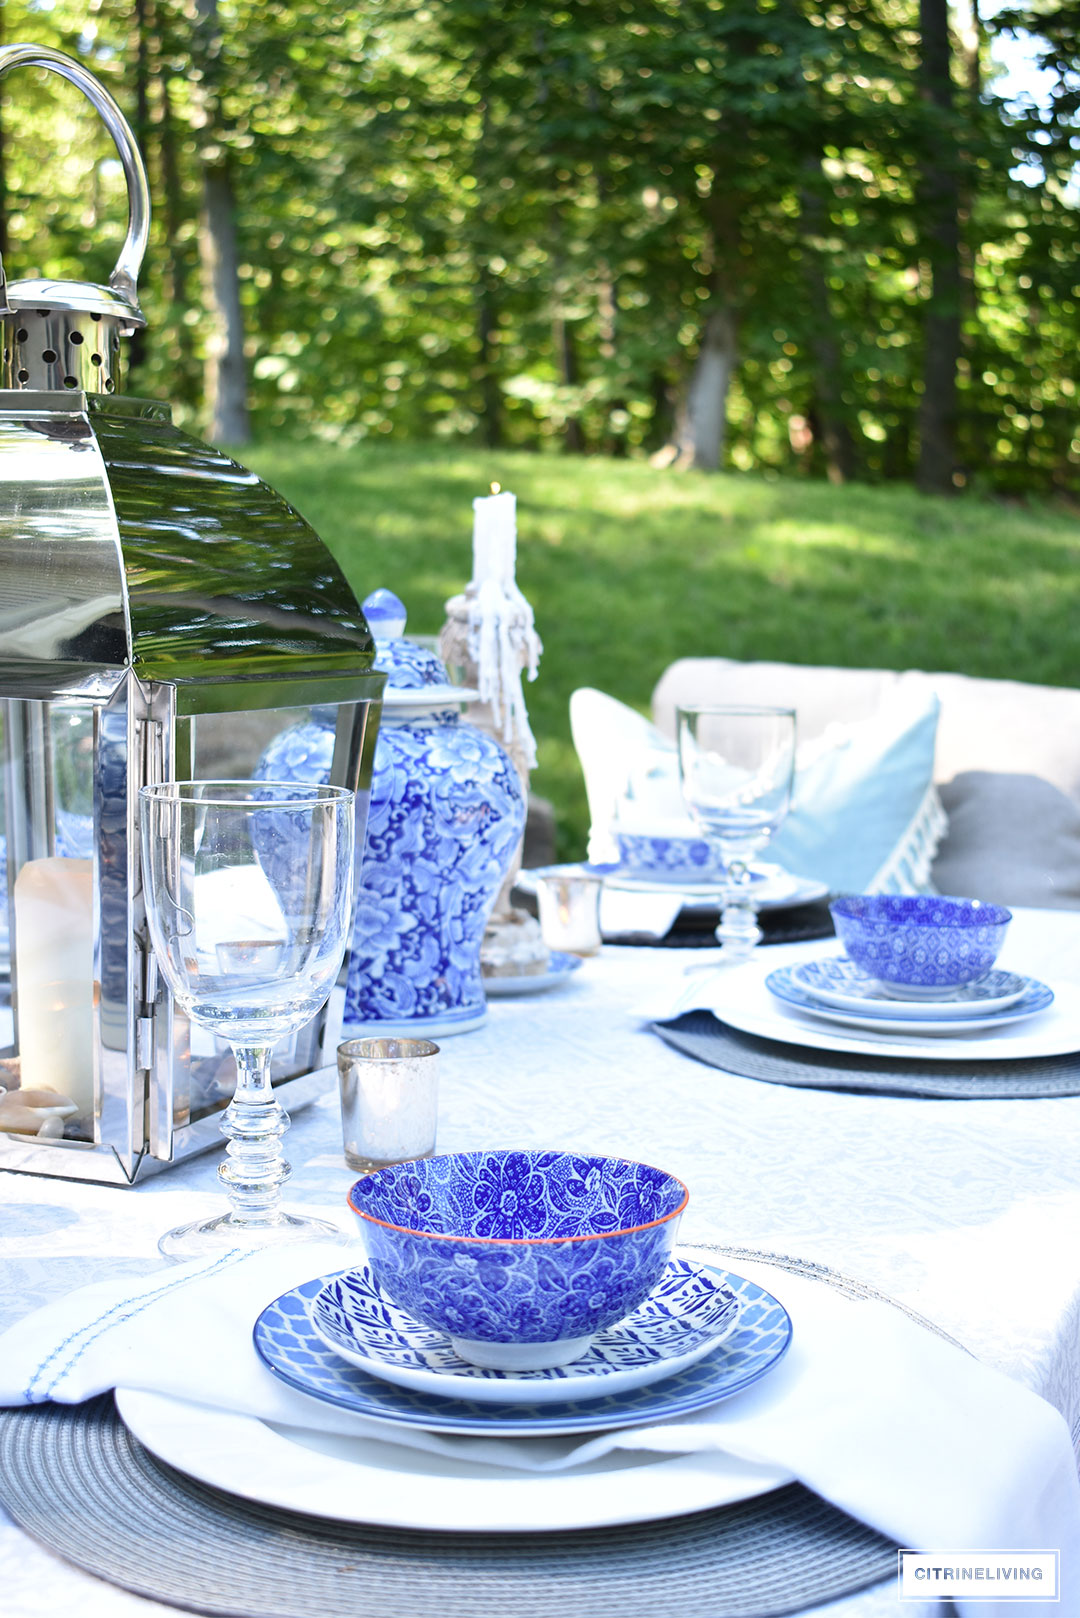 An outdoor tablescape with blue and white ginger jars and a mix of blue and white patterned dishes brings a casual yet elegant look to your outdoor space.